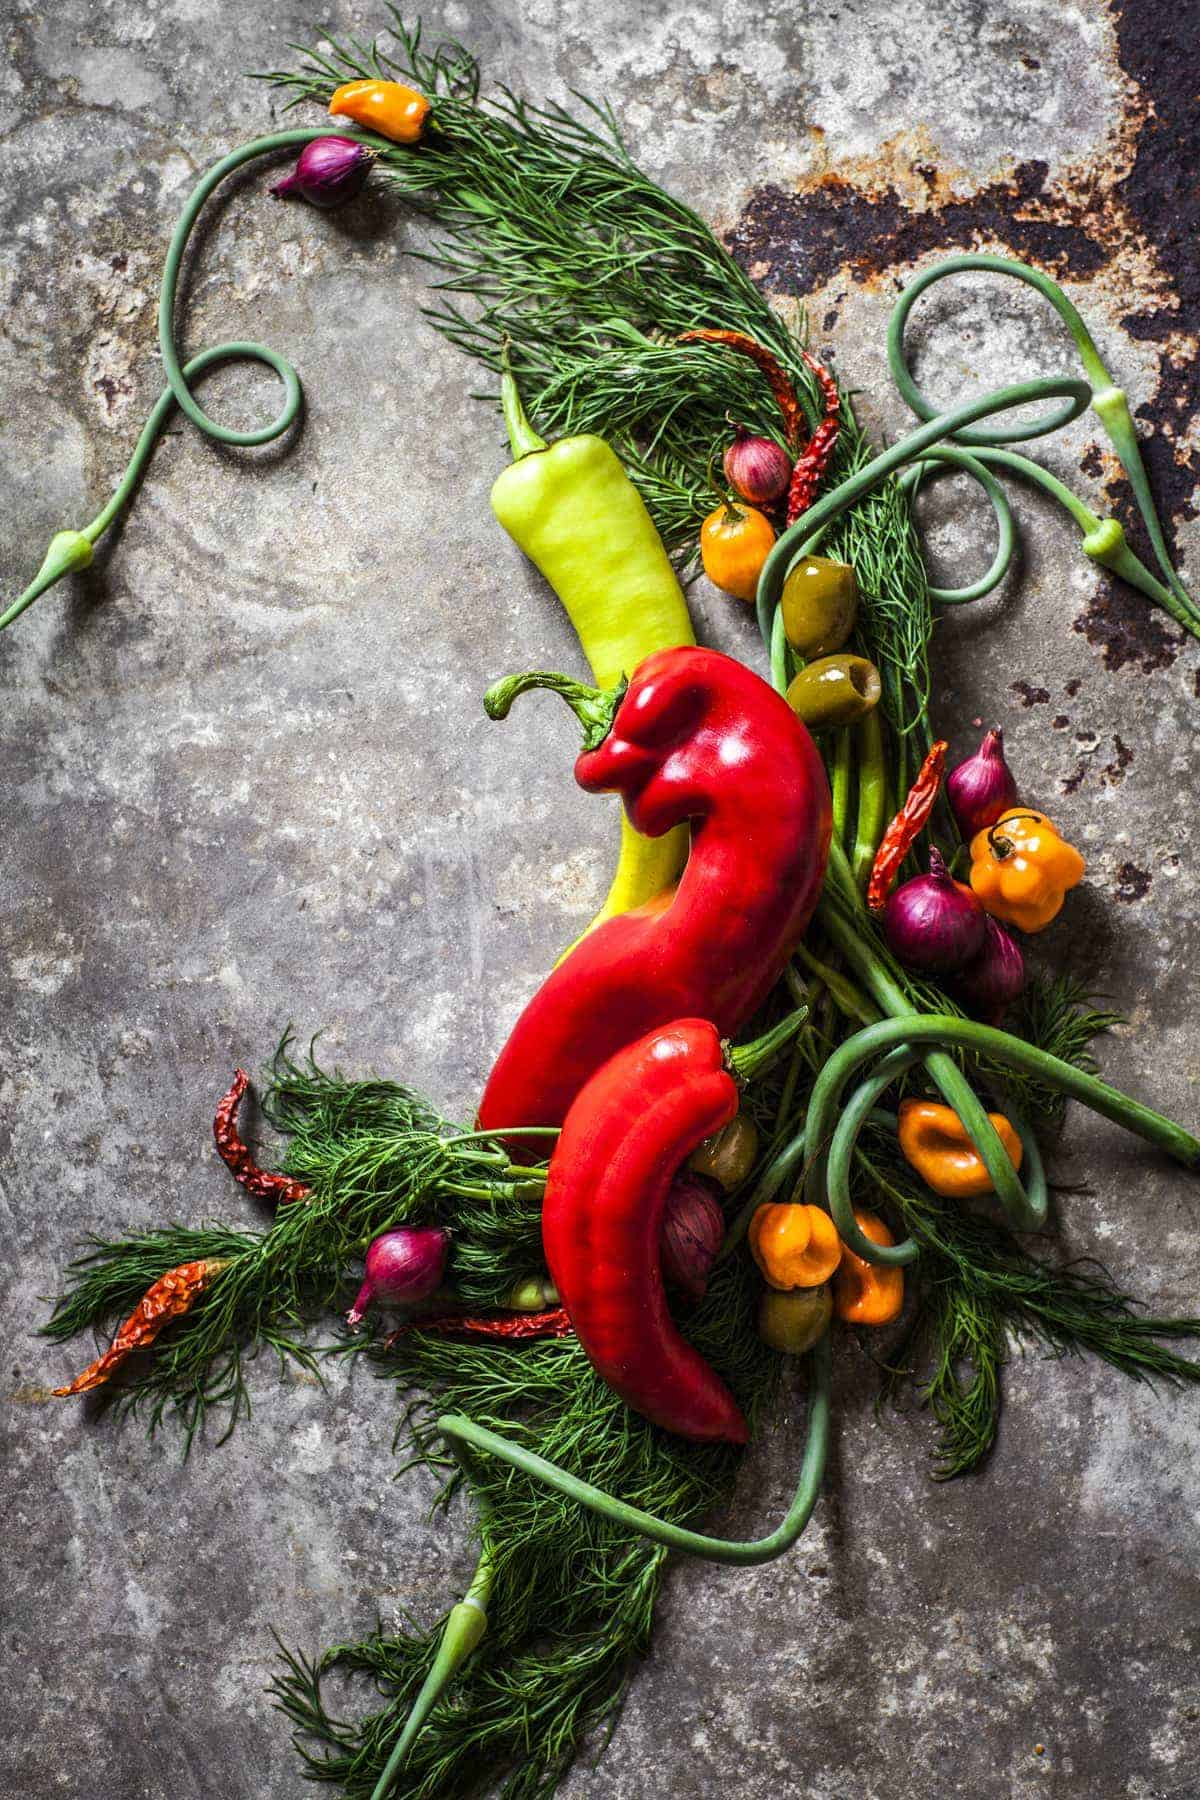 Food Photography Tips - Spicy Garden Vegetable Infused Vodka - Jena Carlin Photography - King Arthur Flour Limited Usage